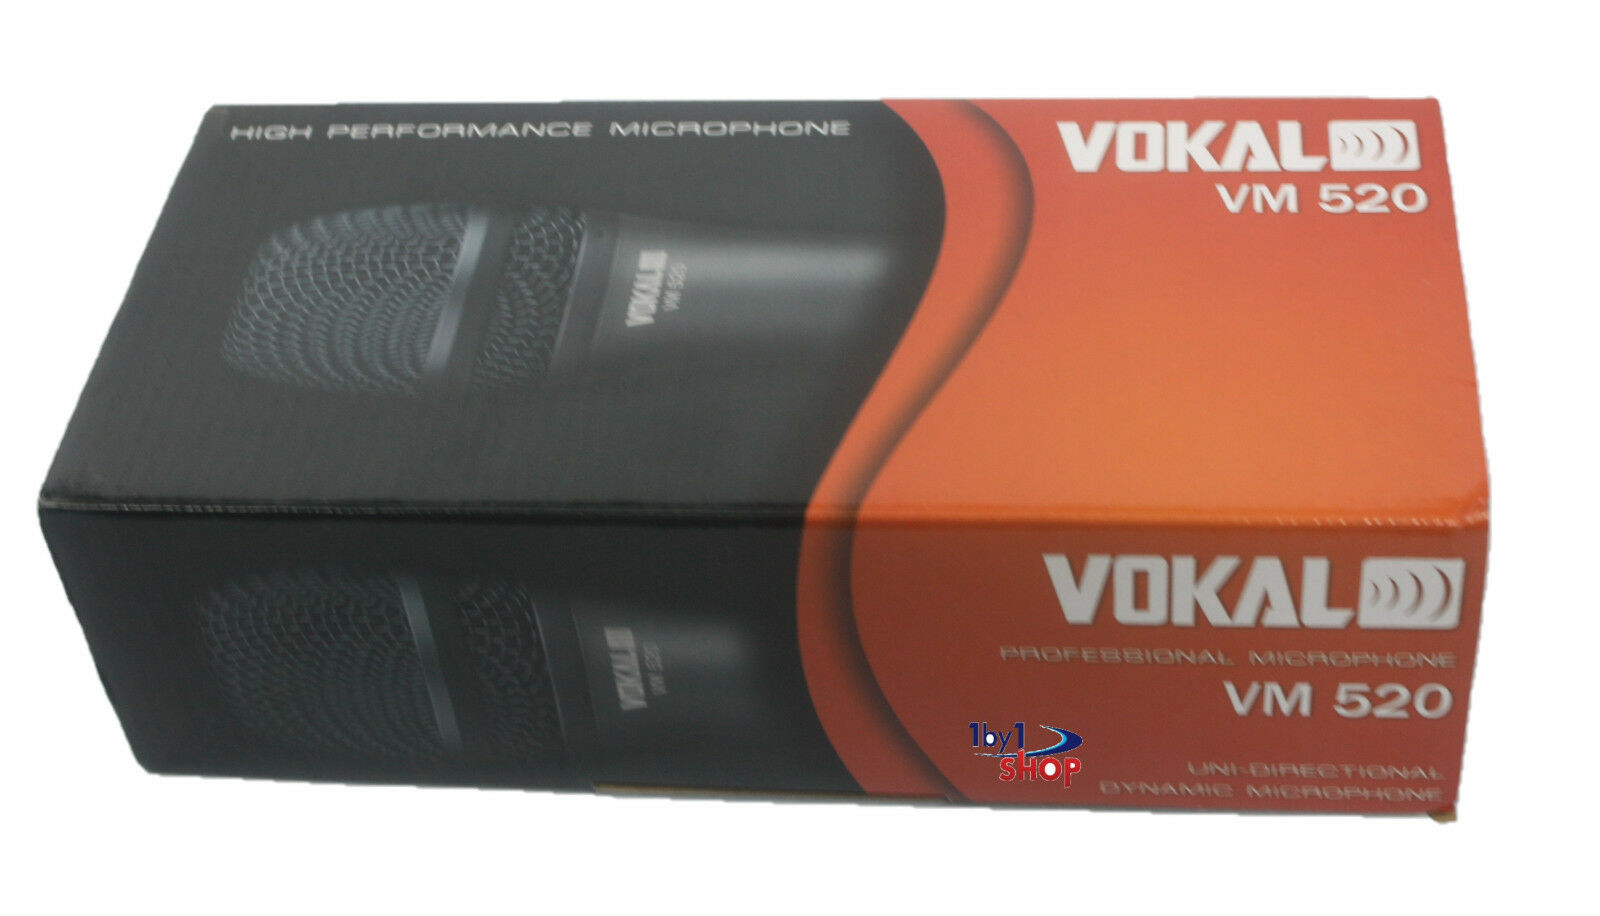 Dynamic Unidirectional Microphone VM-520 By Vokal -Factory Sealed